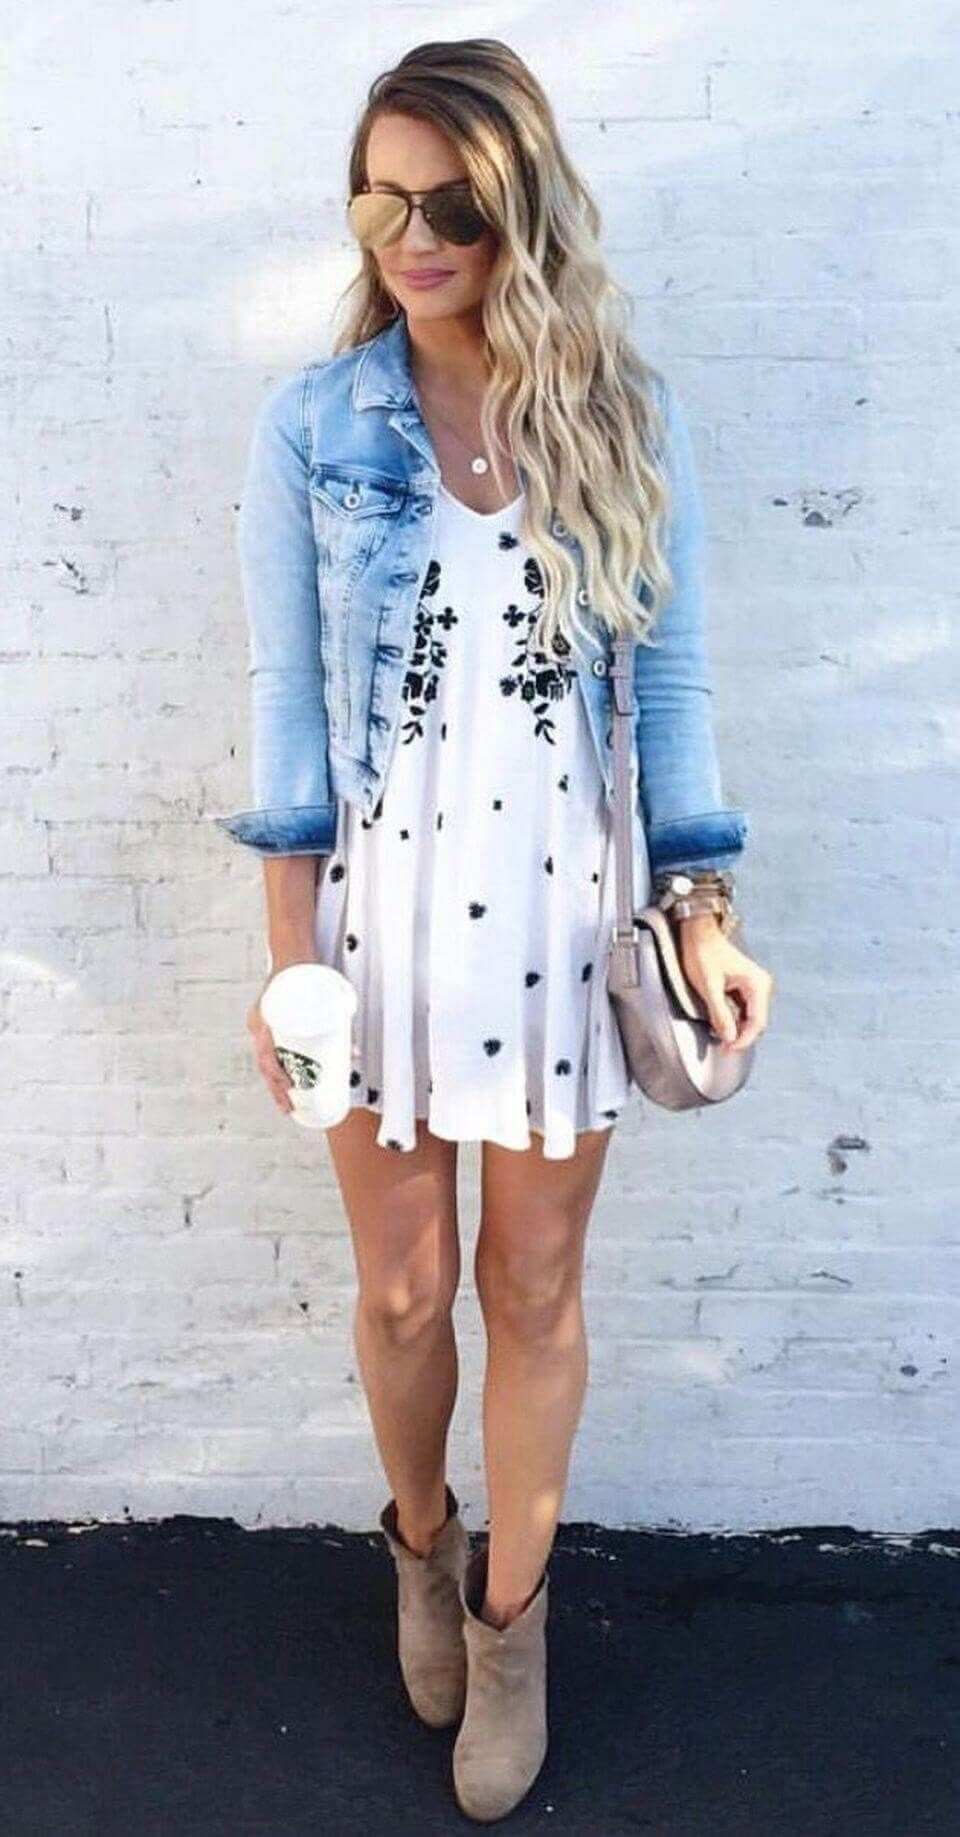 30 Stylish Denim Jacket Outfits For Spring Stylish Denim Outfit Inspiration Spring Best Casual Outfits [ 1837 x 960 Pixel ]